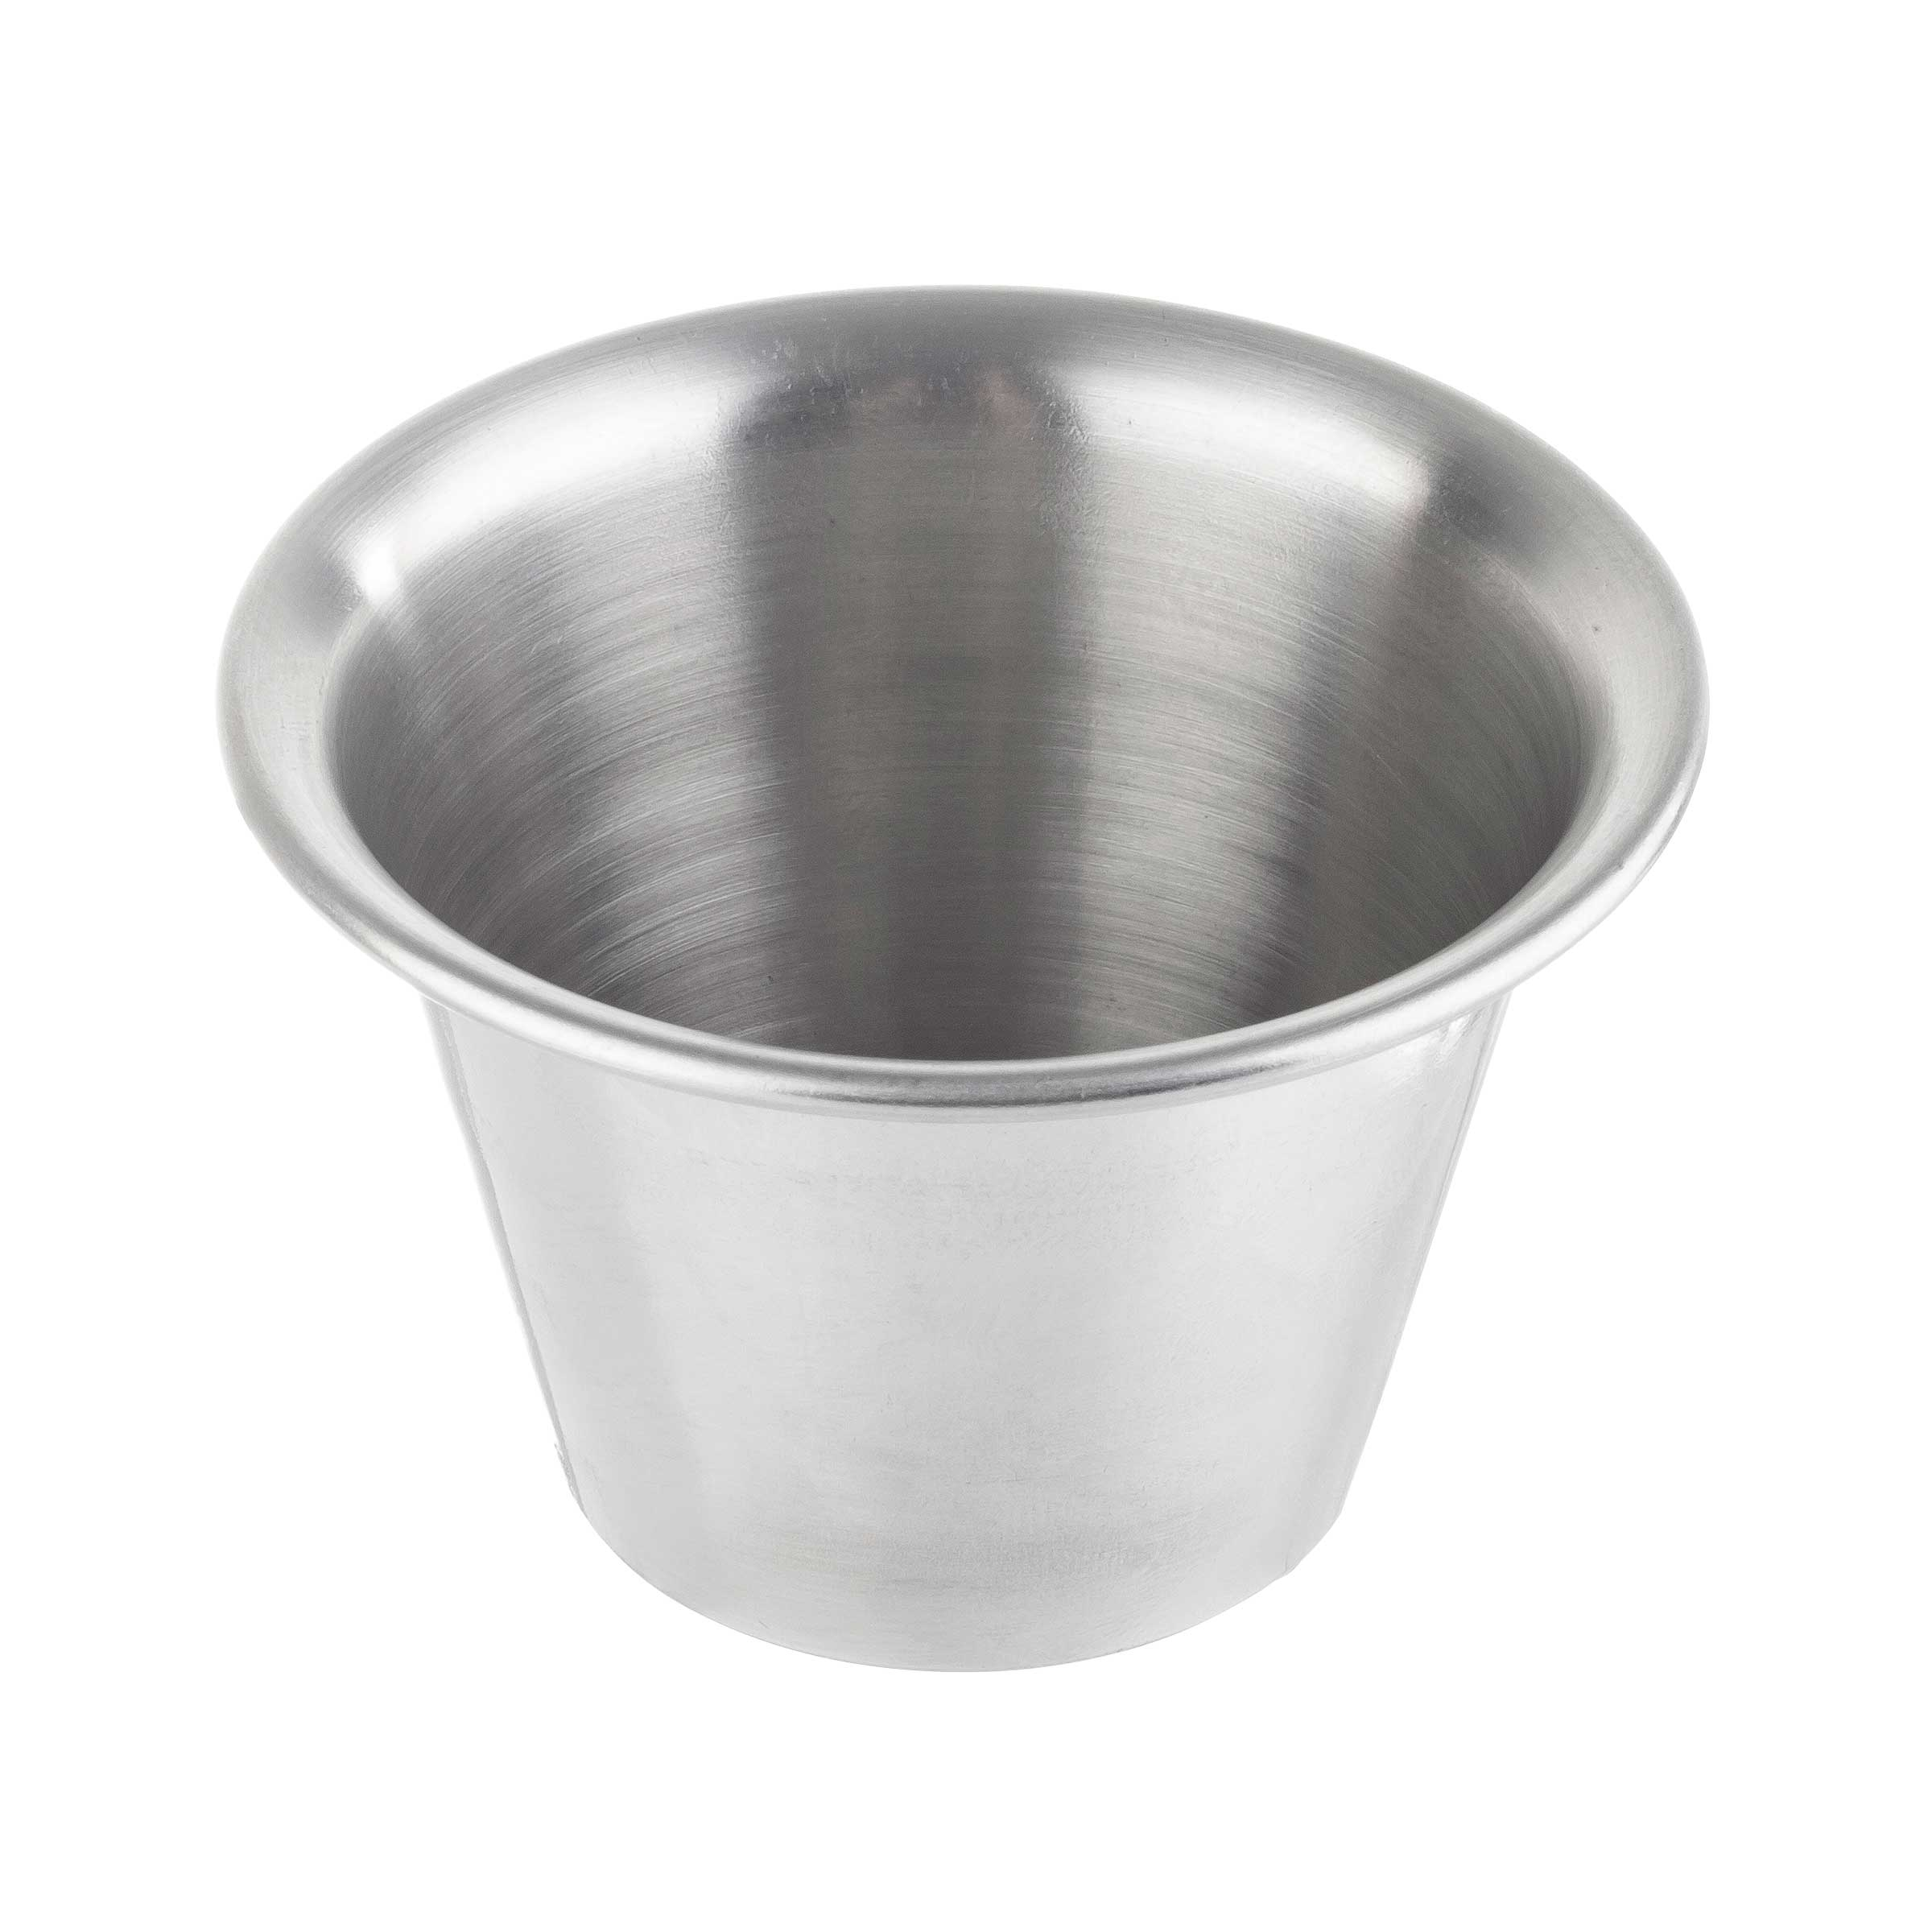 TableCraft Products 240010 ramekin / sauce cup, metal